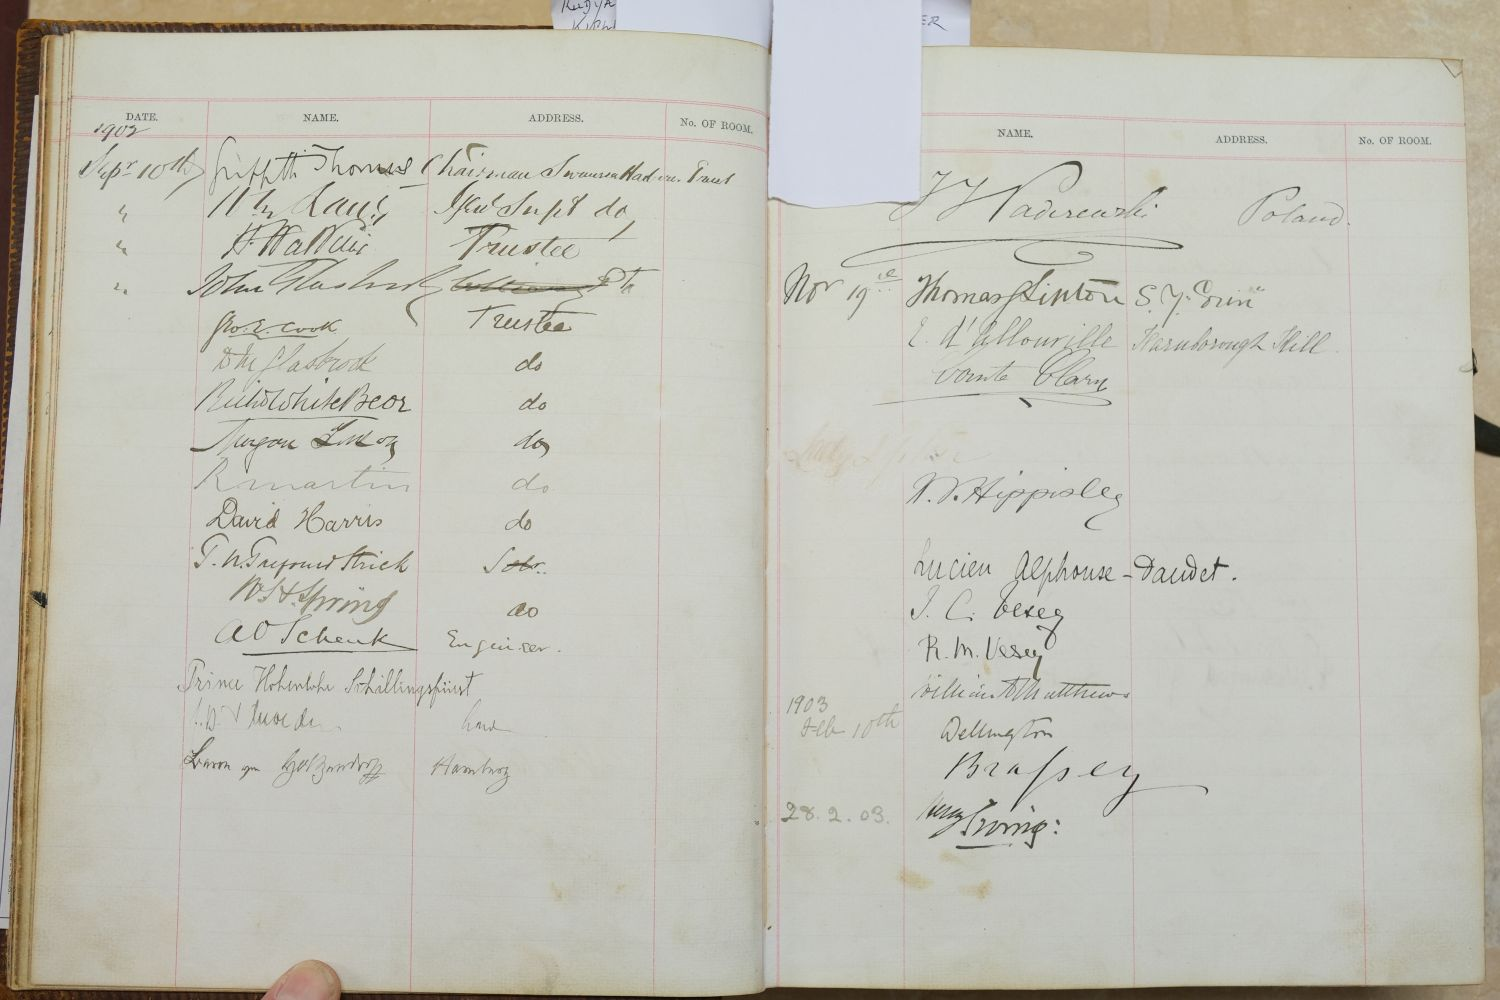 Visitors' Book. South Western Hotel, Southampton. A visitors' book, circa 1899-1912 - Image 11 of 16